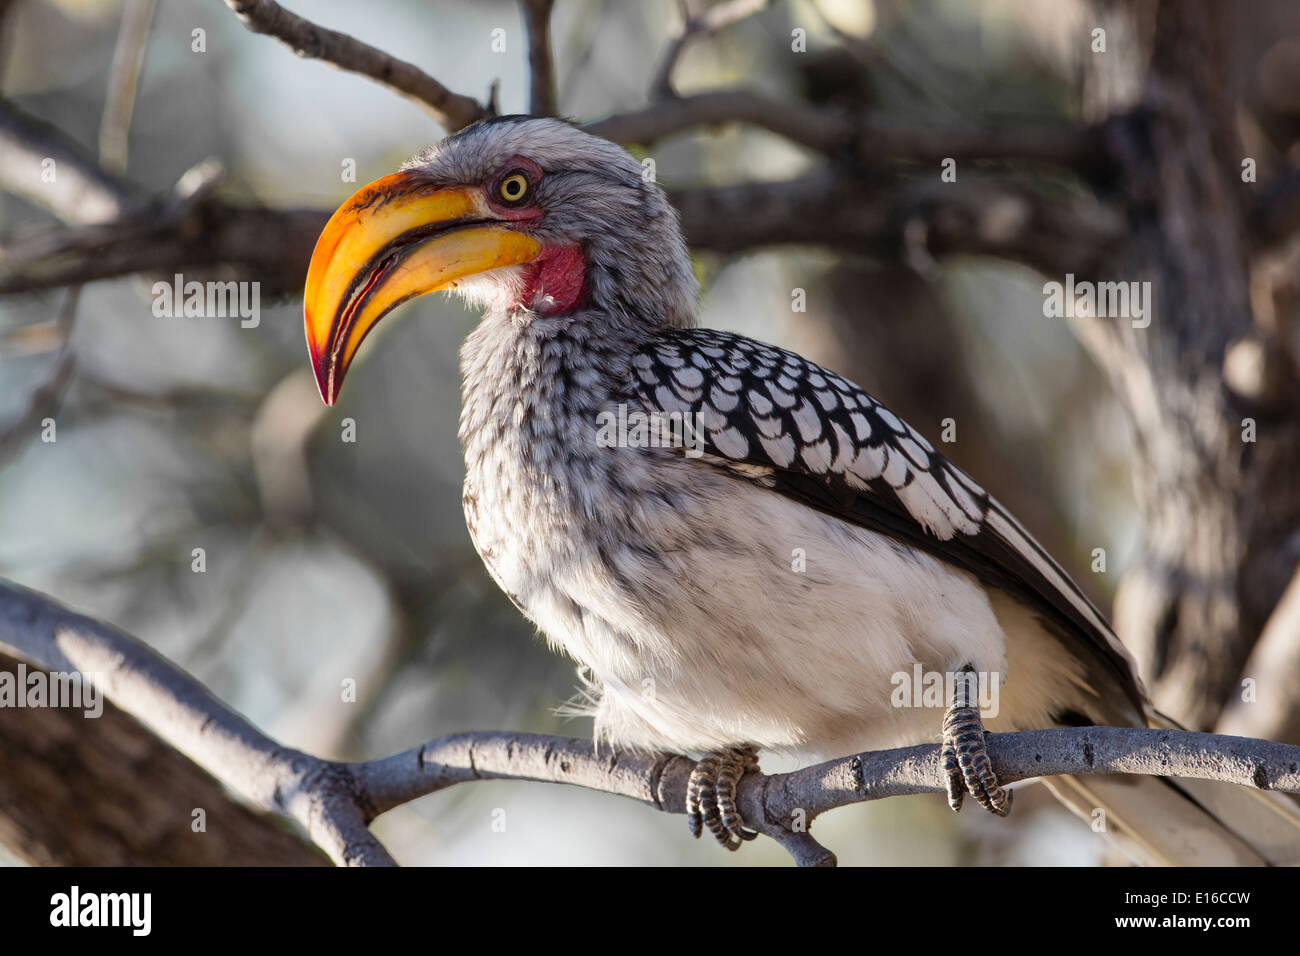 Southern Yellow-Billed Hornbill - Stock Image